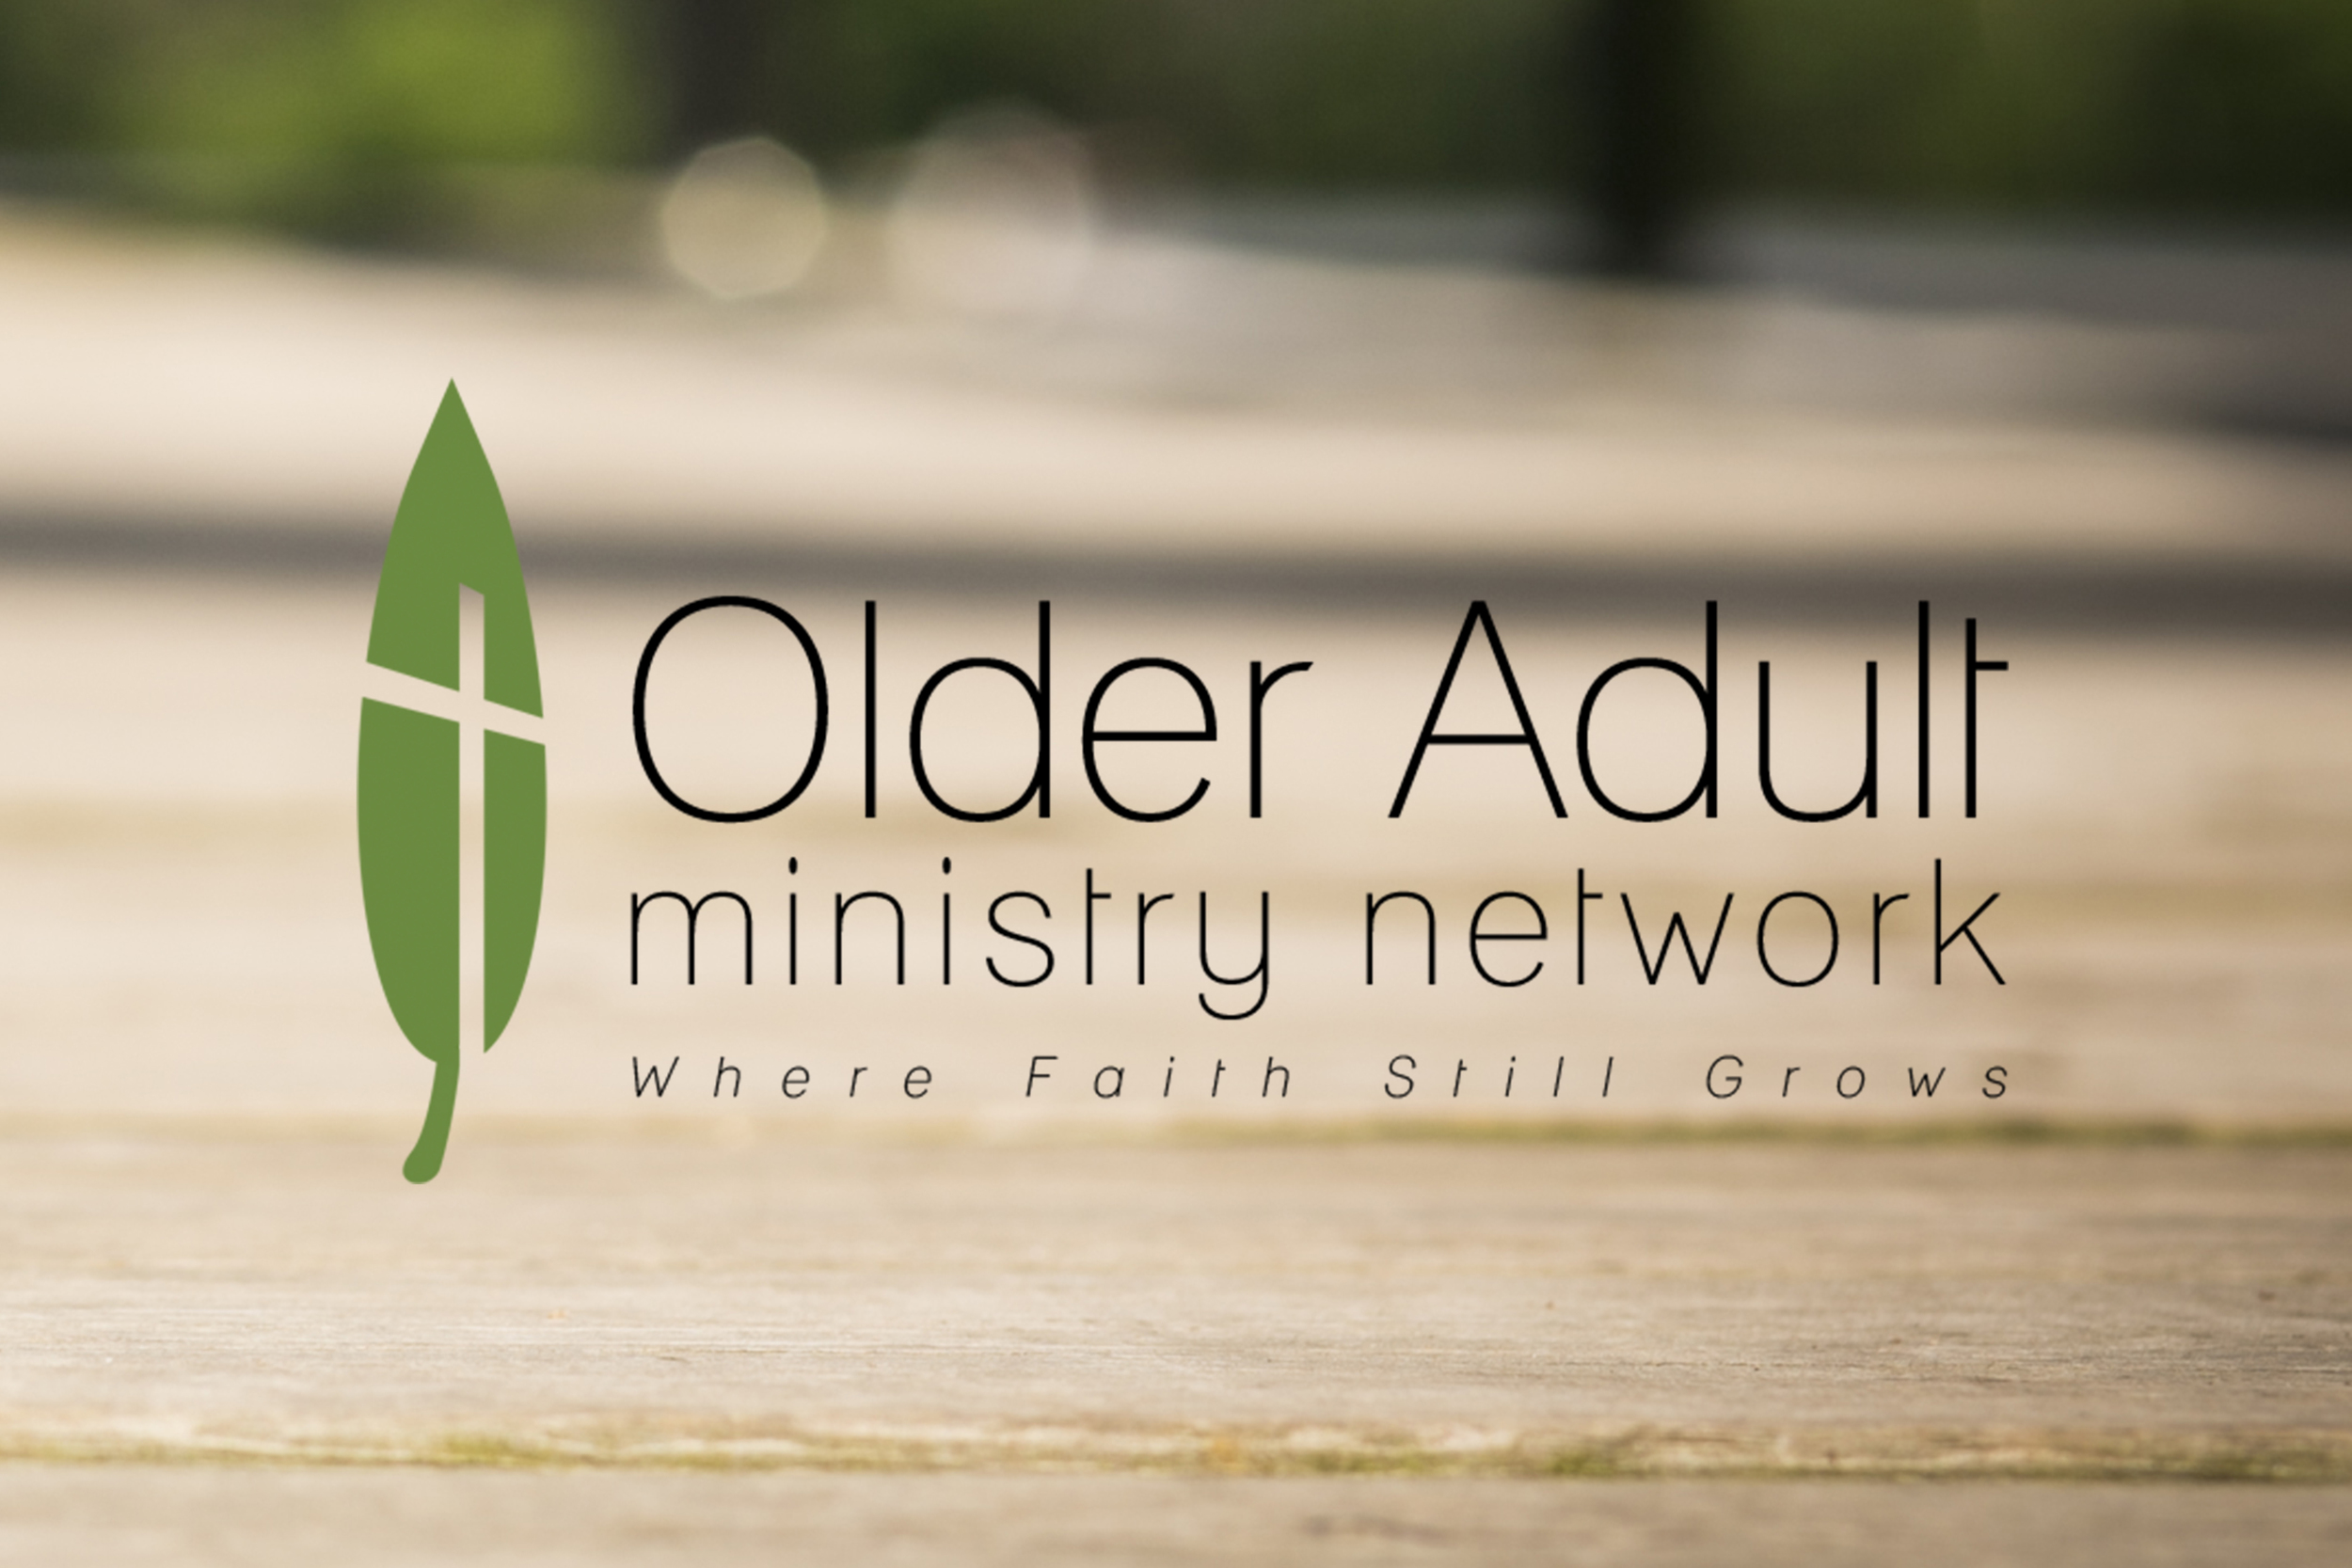 The Older Adult Ministry Network launched in September of 2013 featuring a then weekly Ageless Faith podcast.